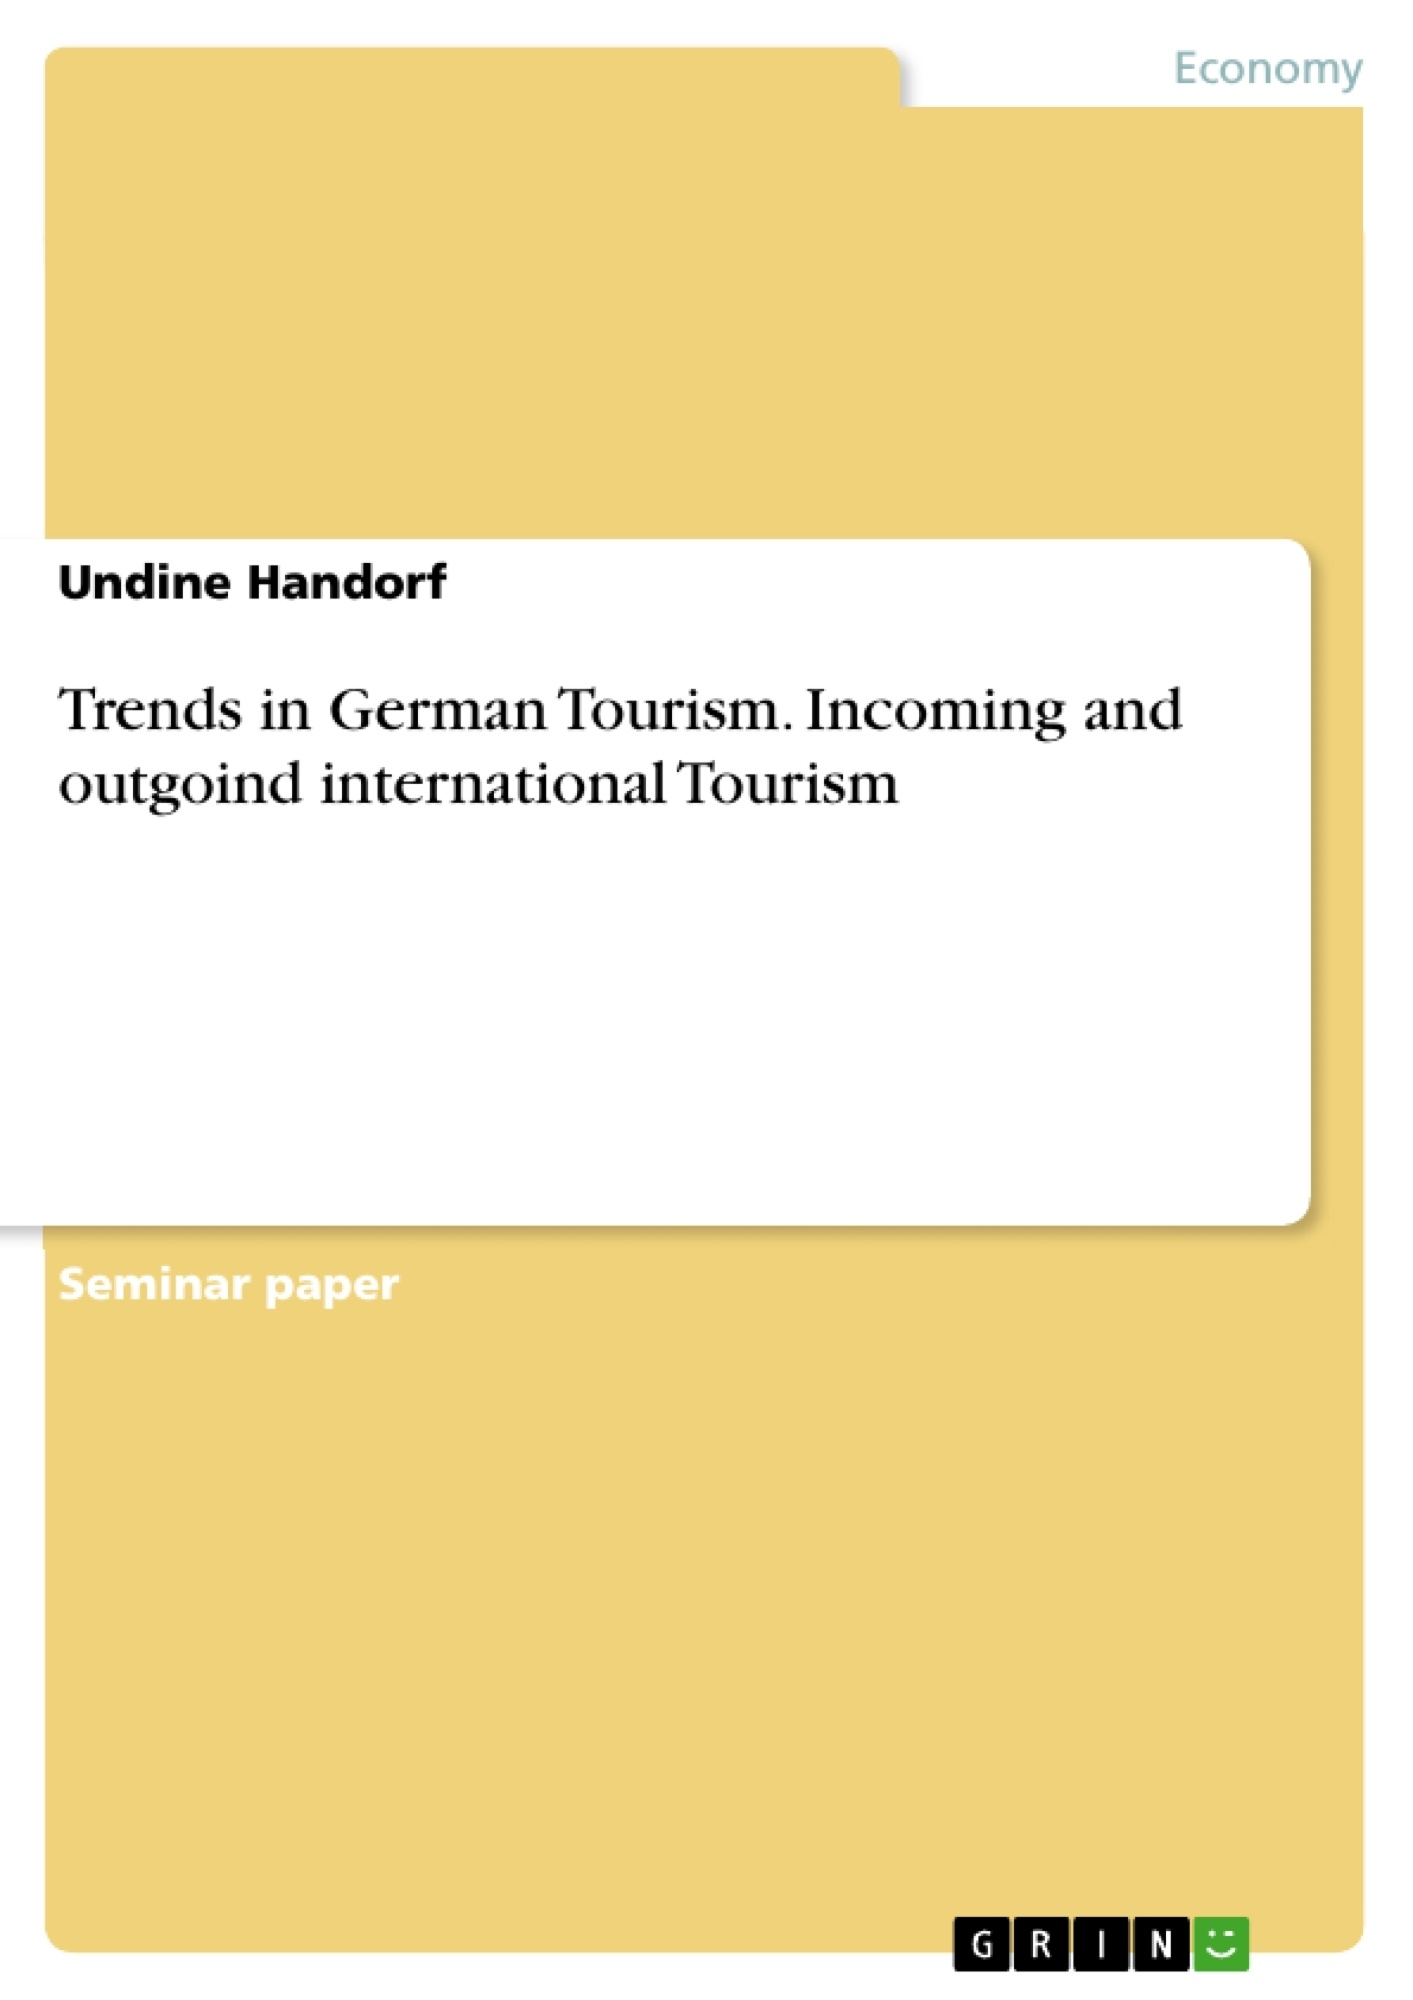 Title: Trends in German Tourism. Incoming and outgoind international Tourism